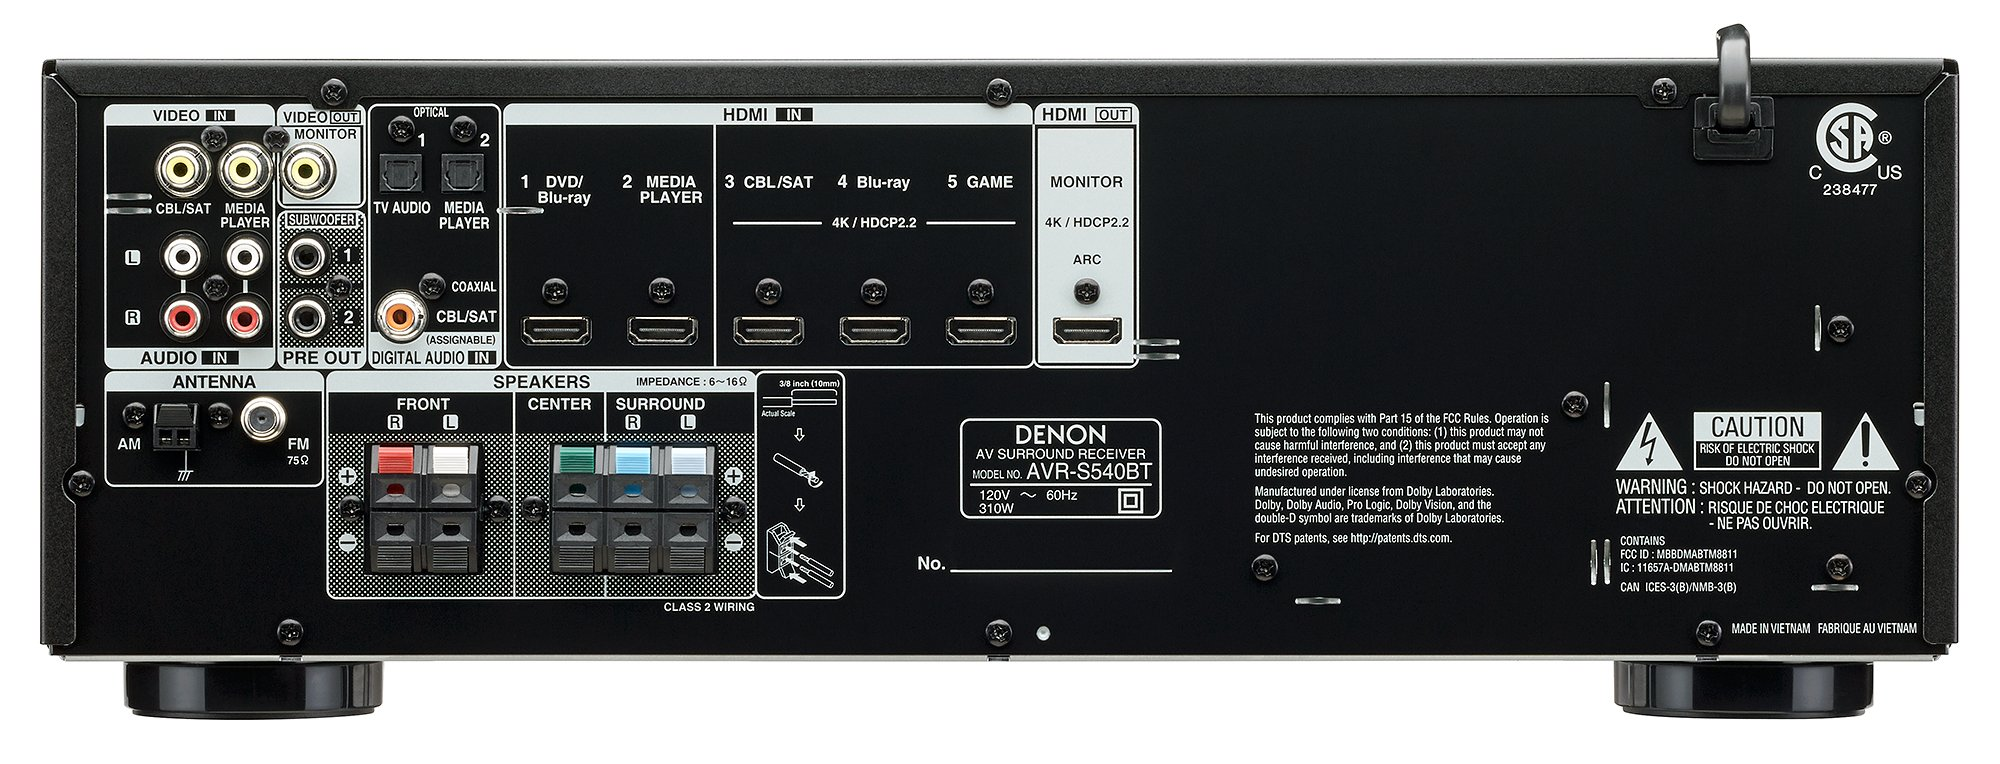 Denon AVR-S540BT Receiver, 5.2 channel, 4K Ultra HD Audio and Video, Home Theater System, built-in Bluetooth and USB port, Compatible with HEOS Link for Wireless Music Streaming by Denon (Image #2)